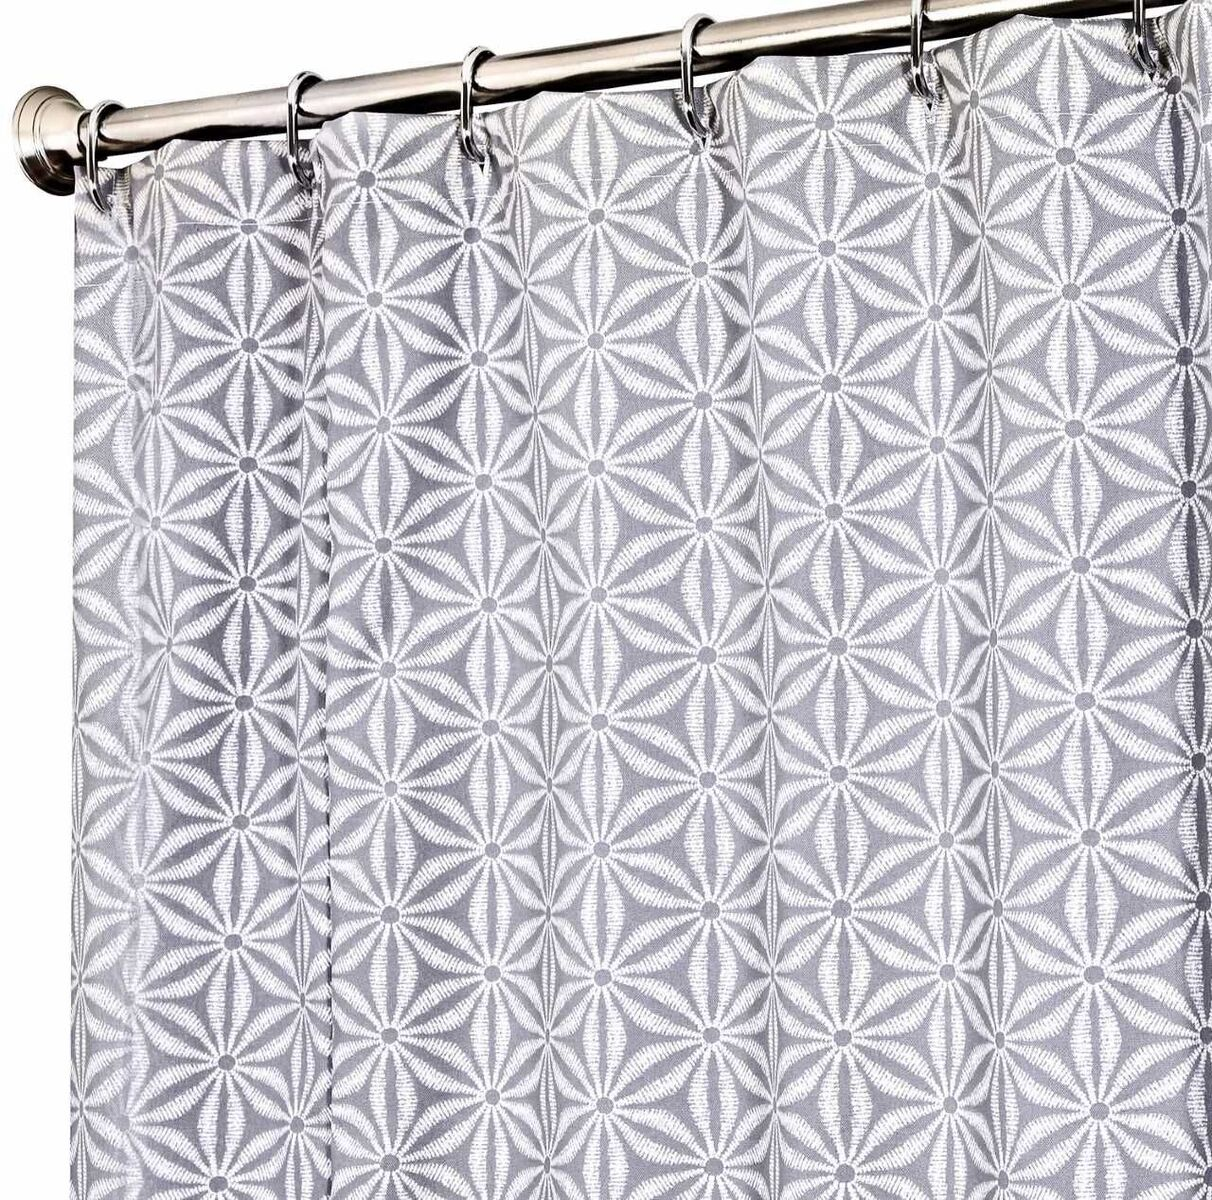 82 Shower Curtain Fabric Shower Curtains In Our Fabric Or Yours